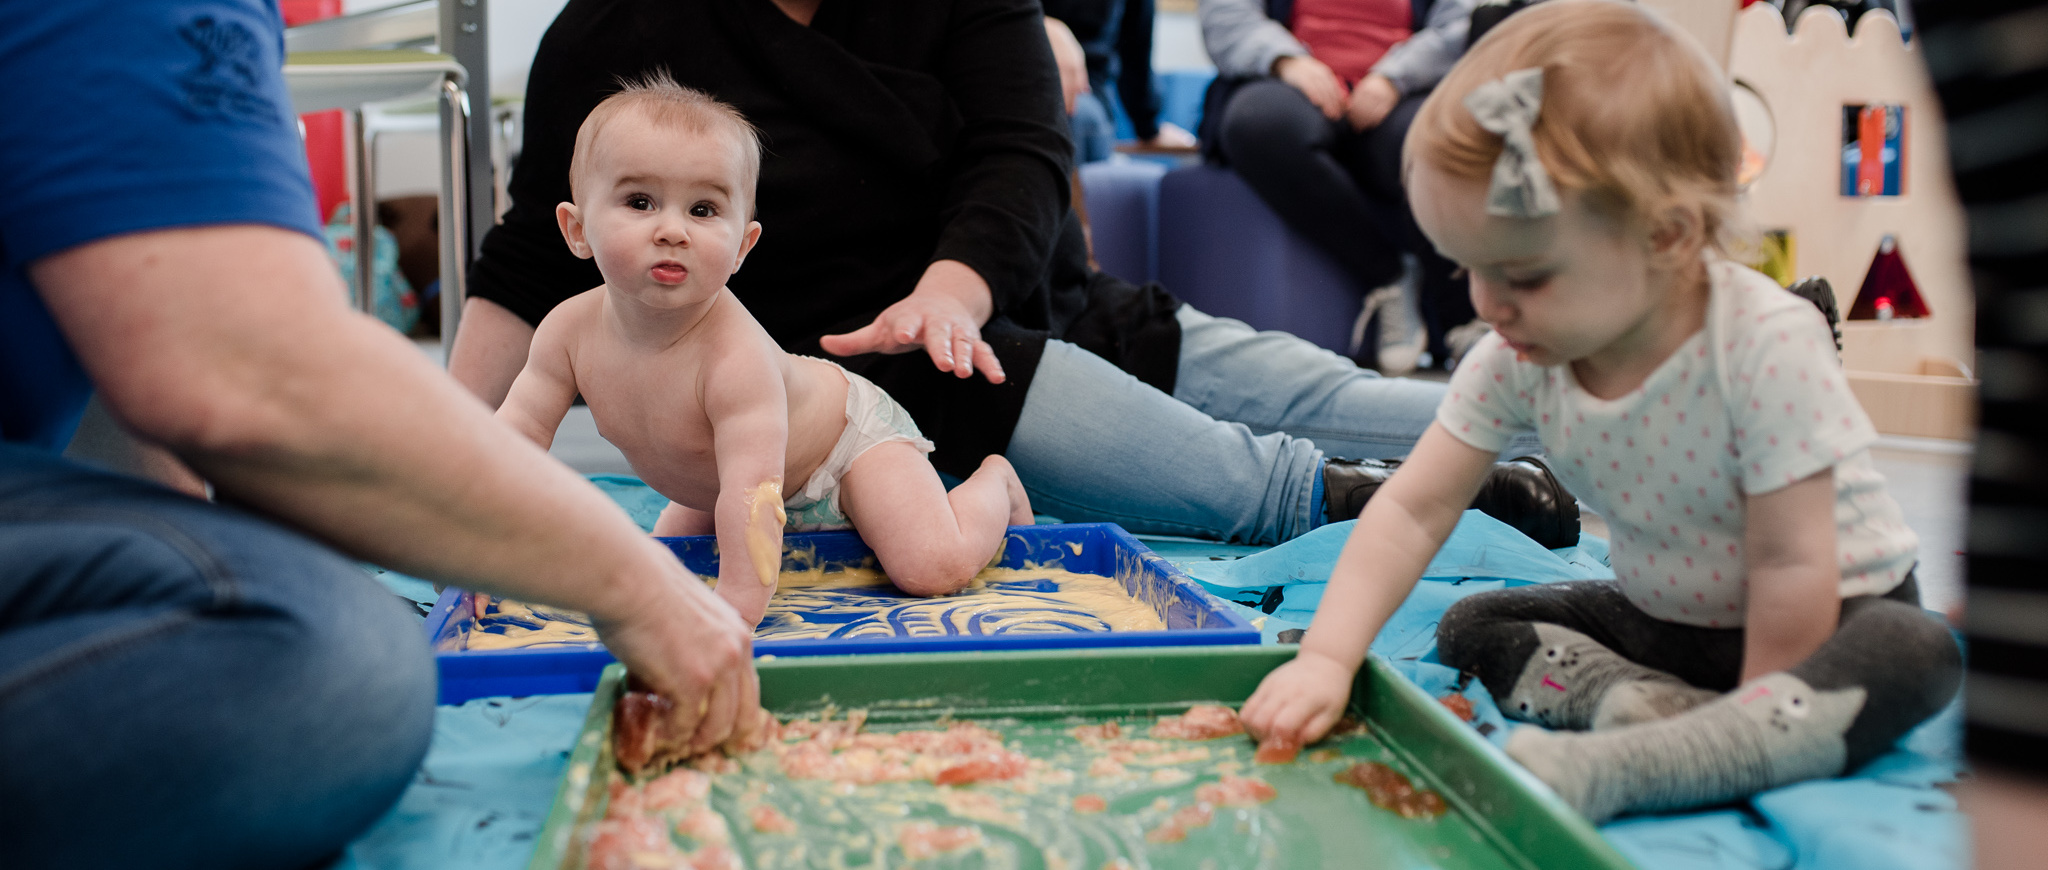 Baby and toddler playing in sand tray